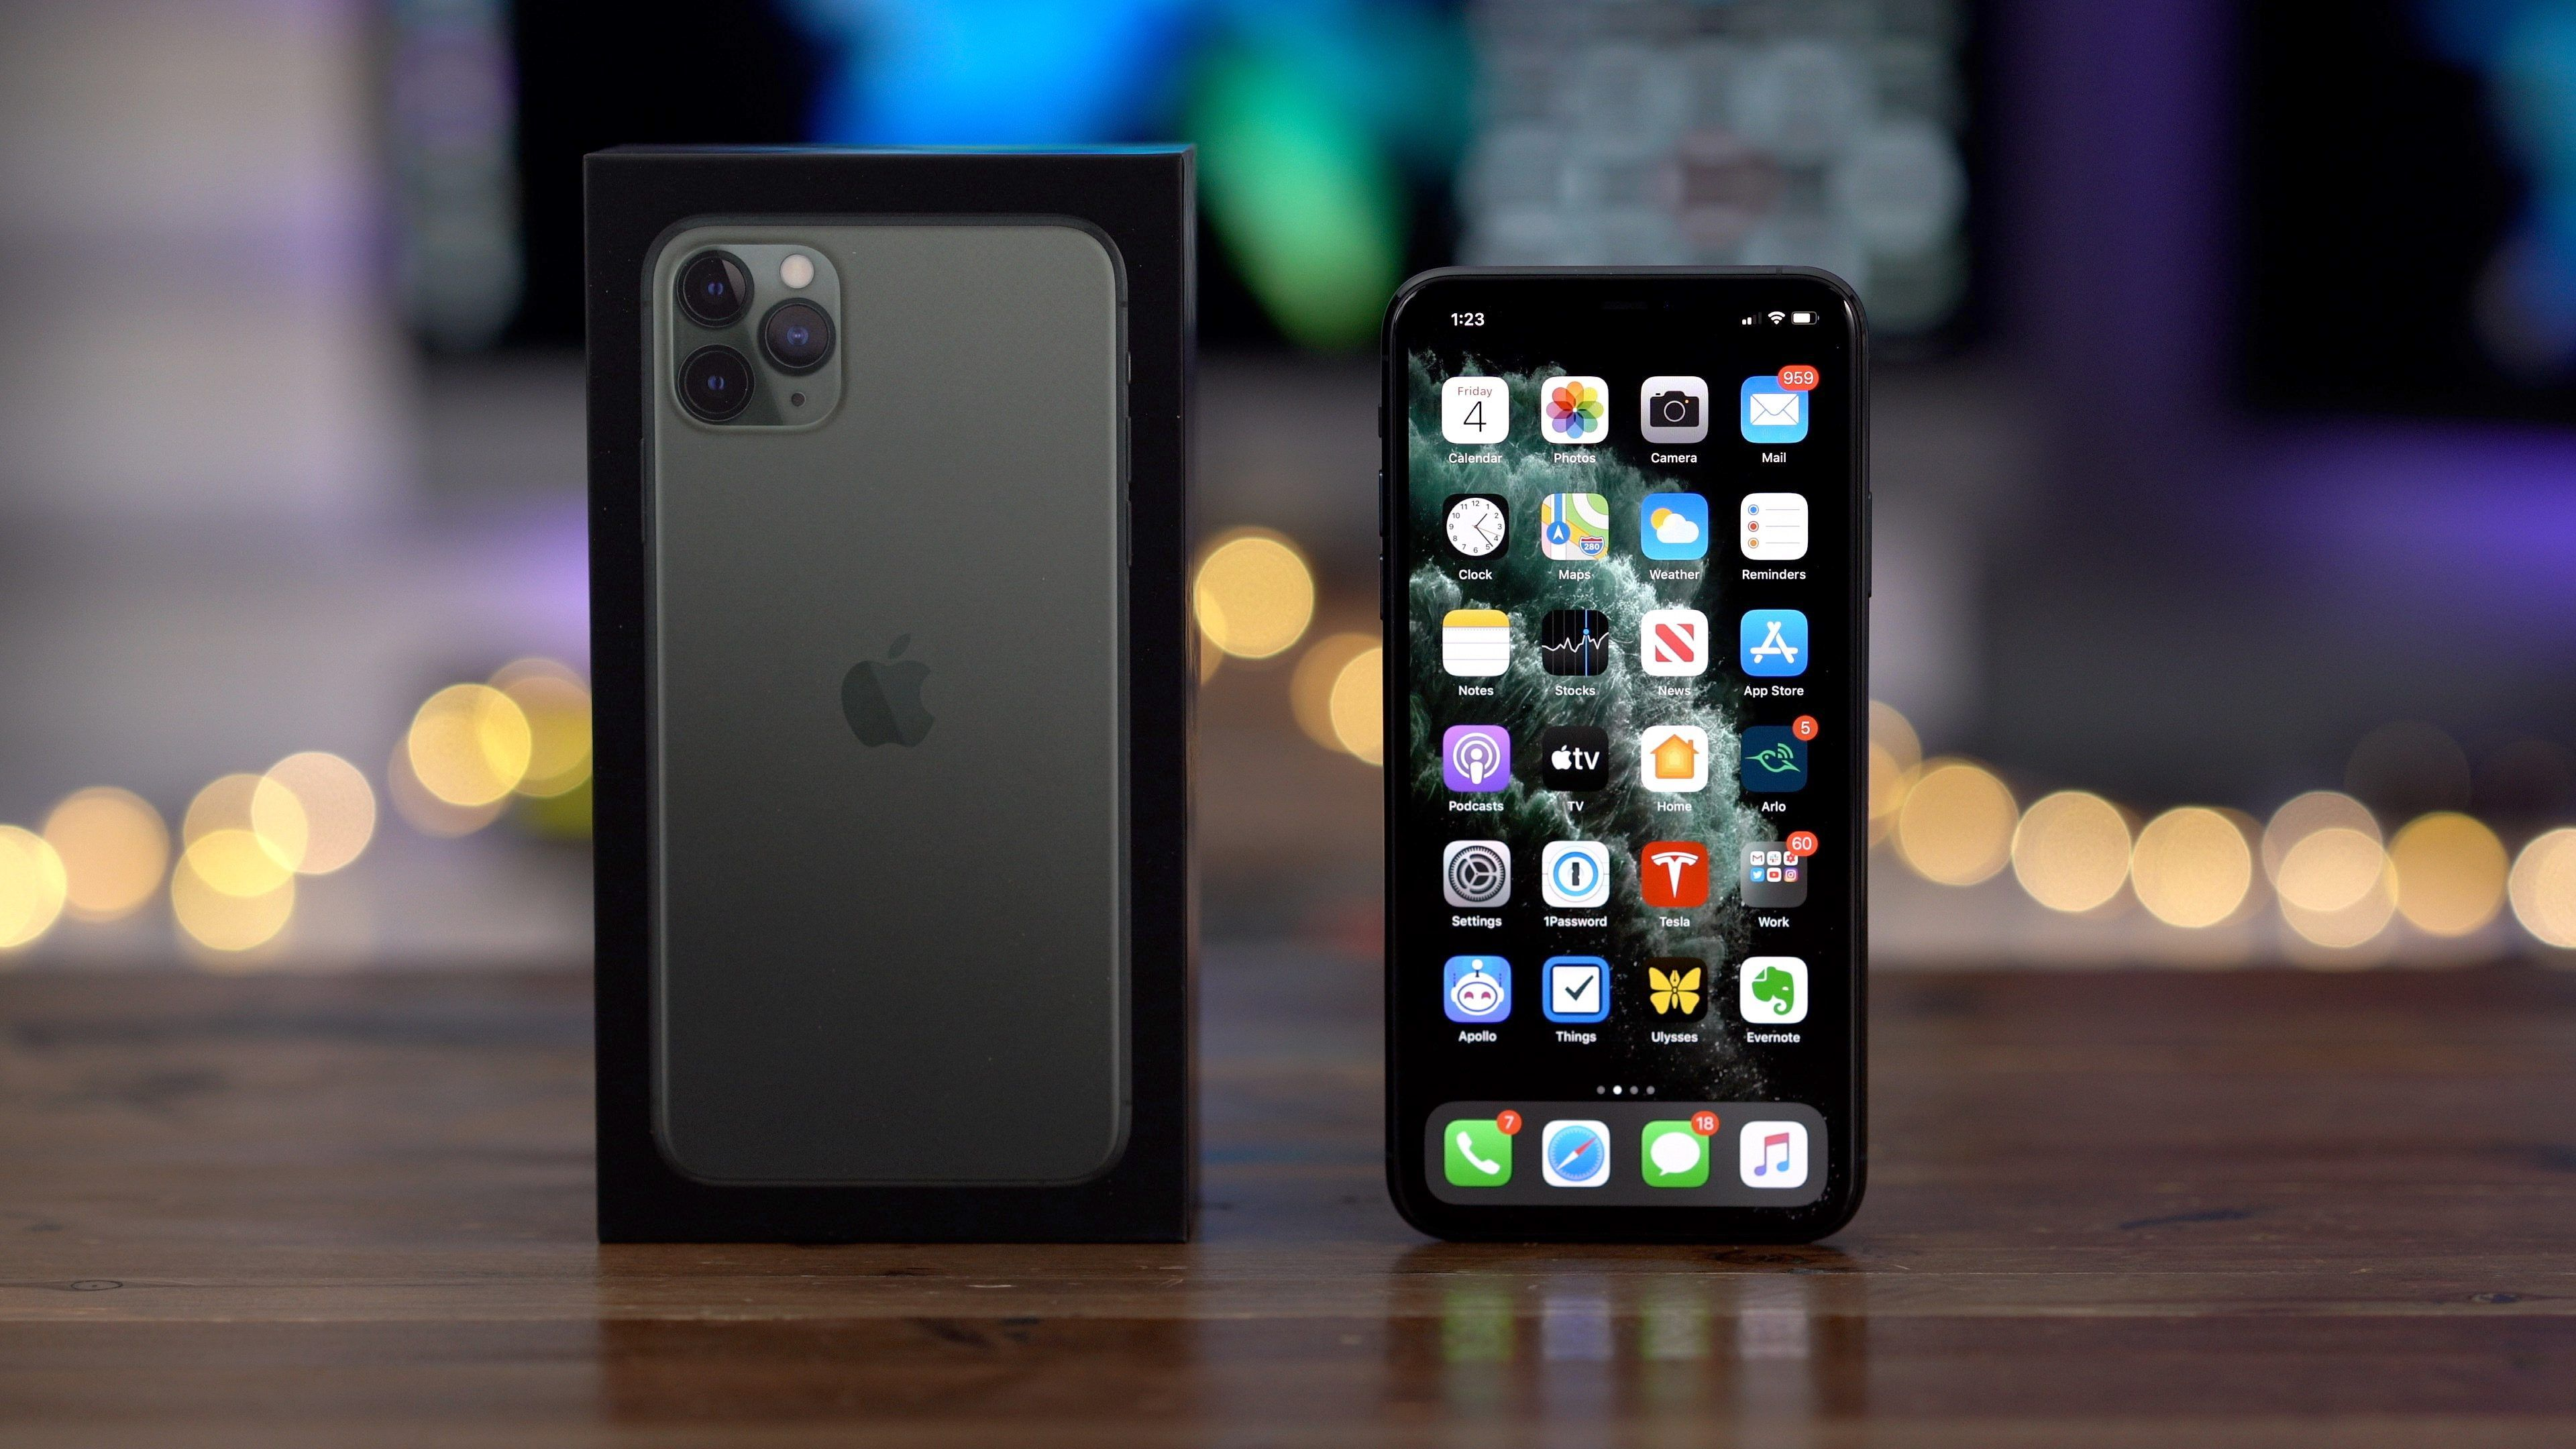 9to5rewards enter to win iphone 11 pro max from totallee